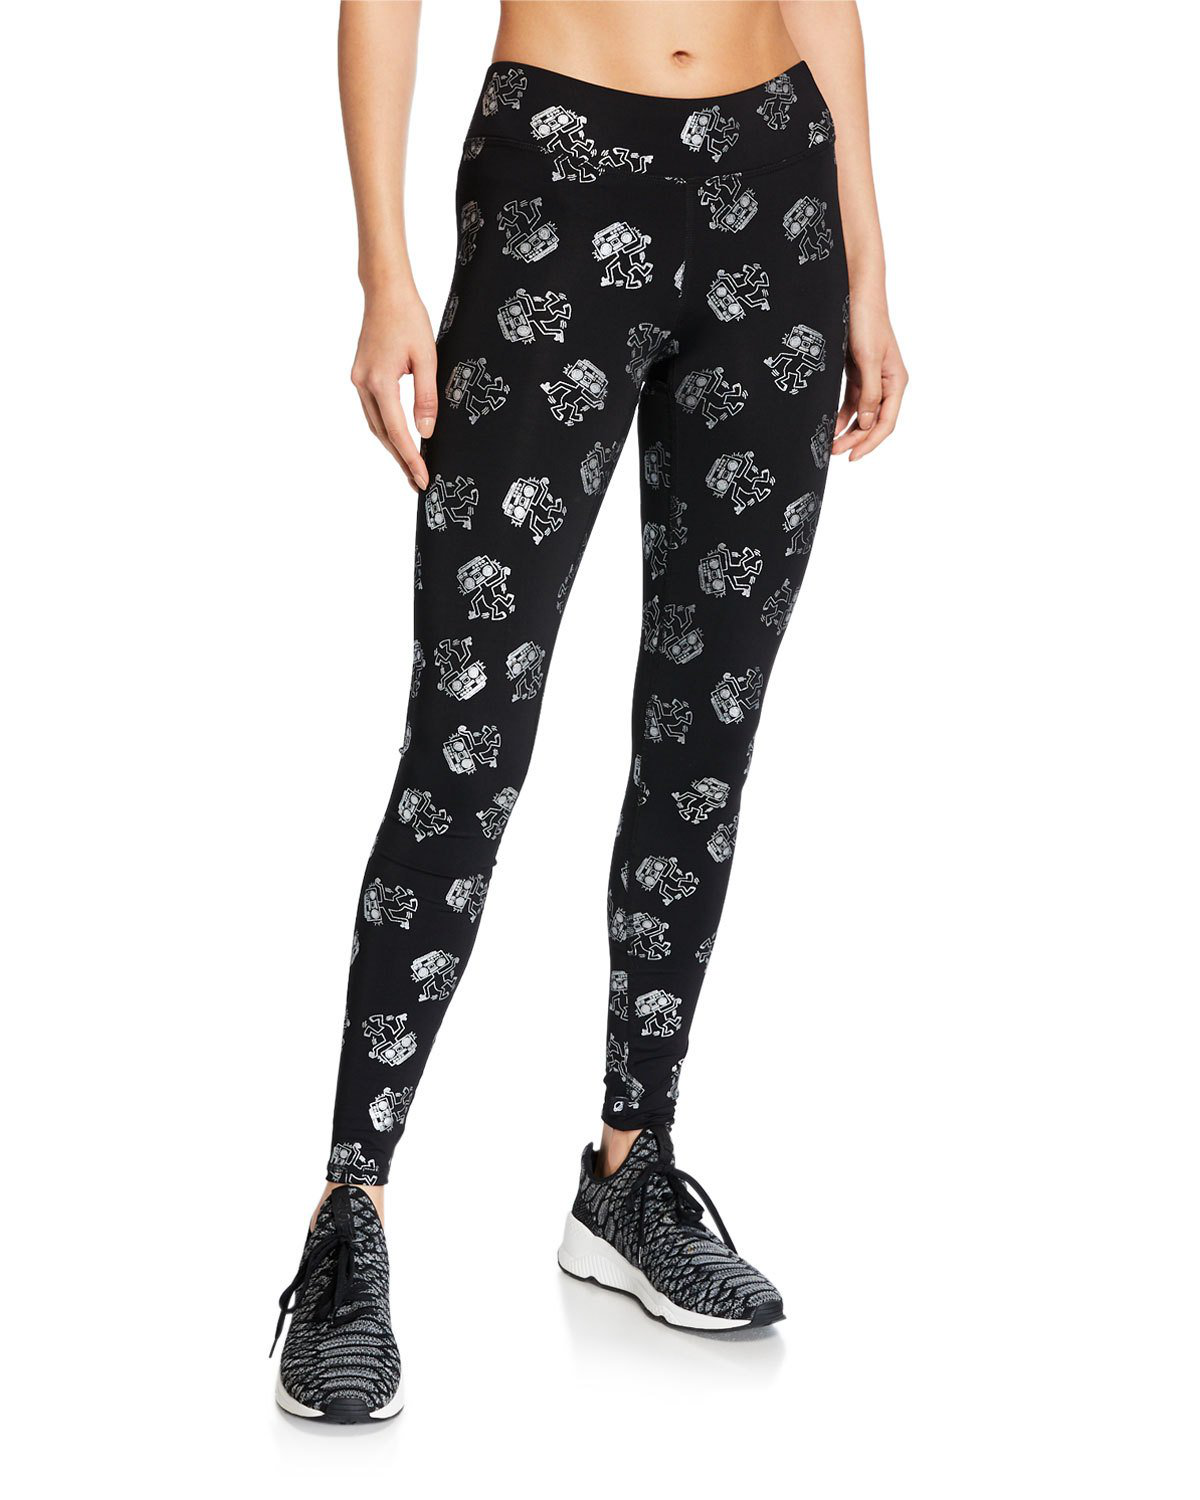 433337a5f37a5 Terez X Keith Haring Tall Band Leggings In Black/Silver | ModeSens